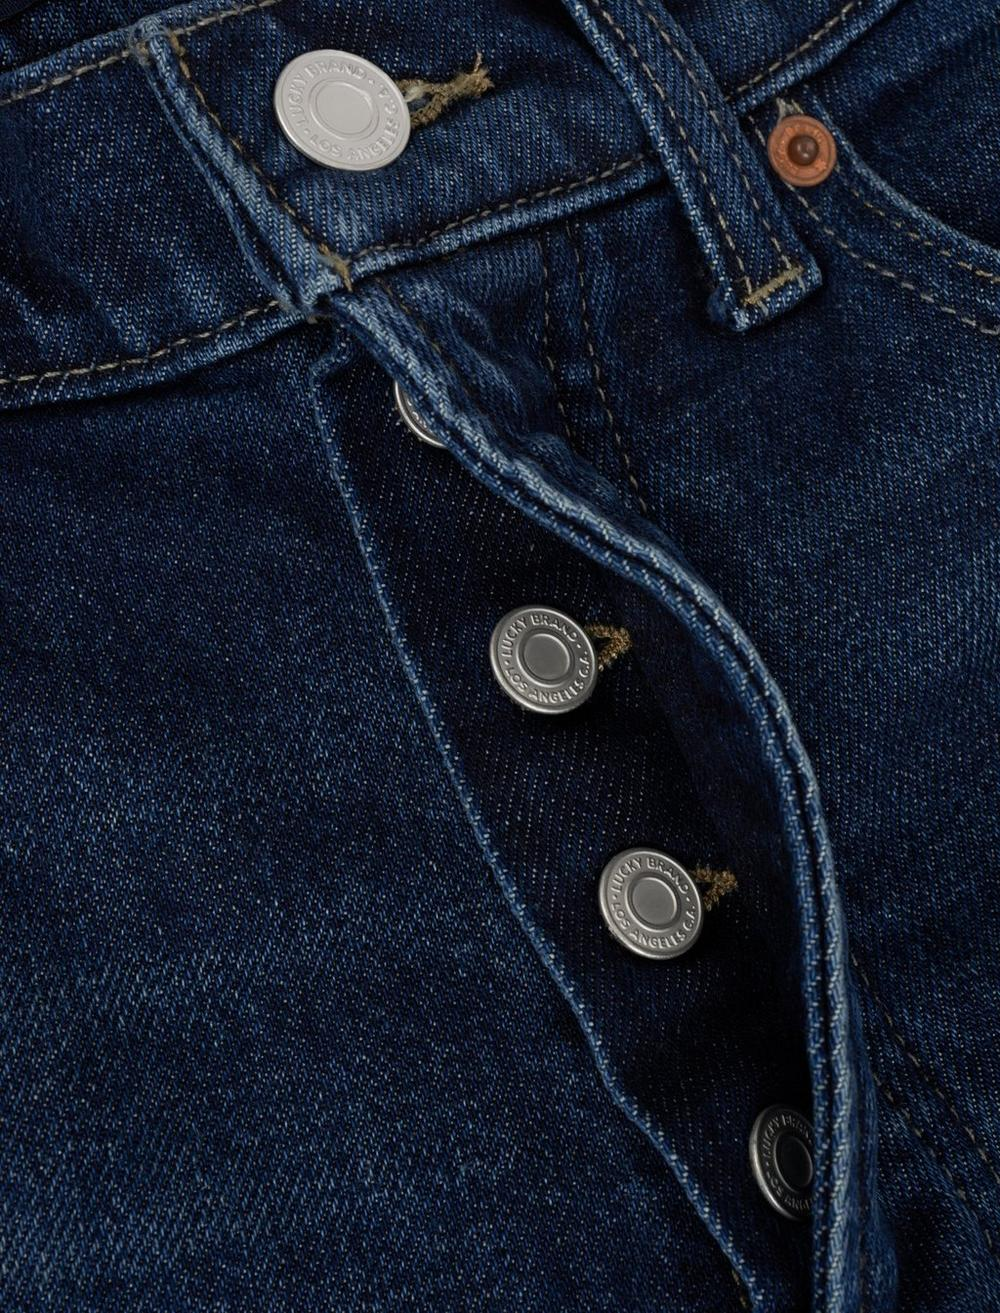 RELAXED TAPER JEAN, image 3